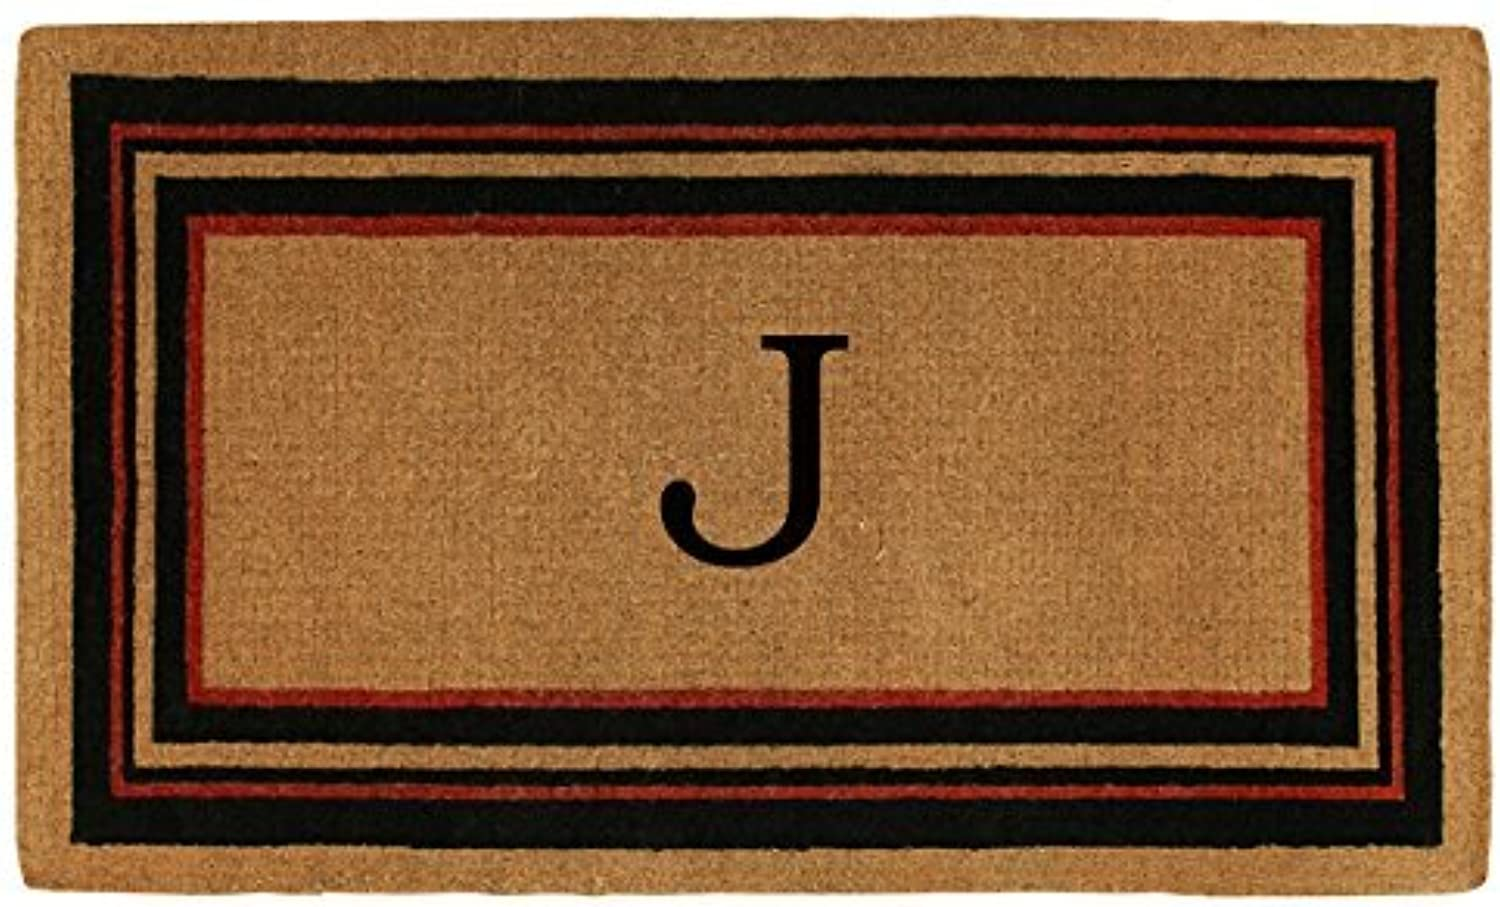 Home & More 180061830J Esquire Extra-Thick Doormat, 18  x 30  x 1.50 , Monogrammed Letter J, Natural Black Red